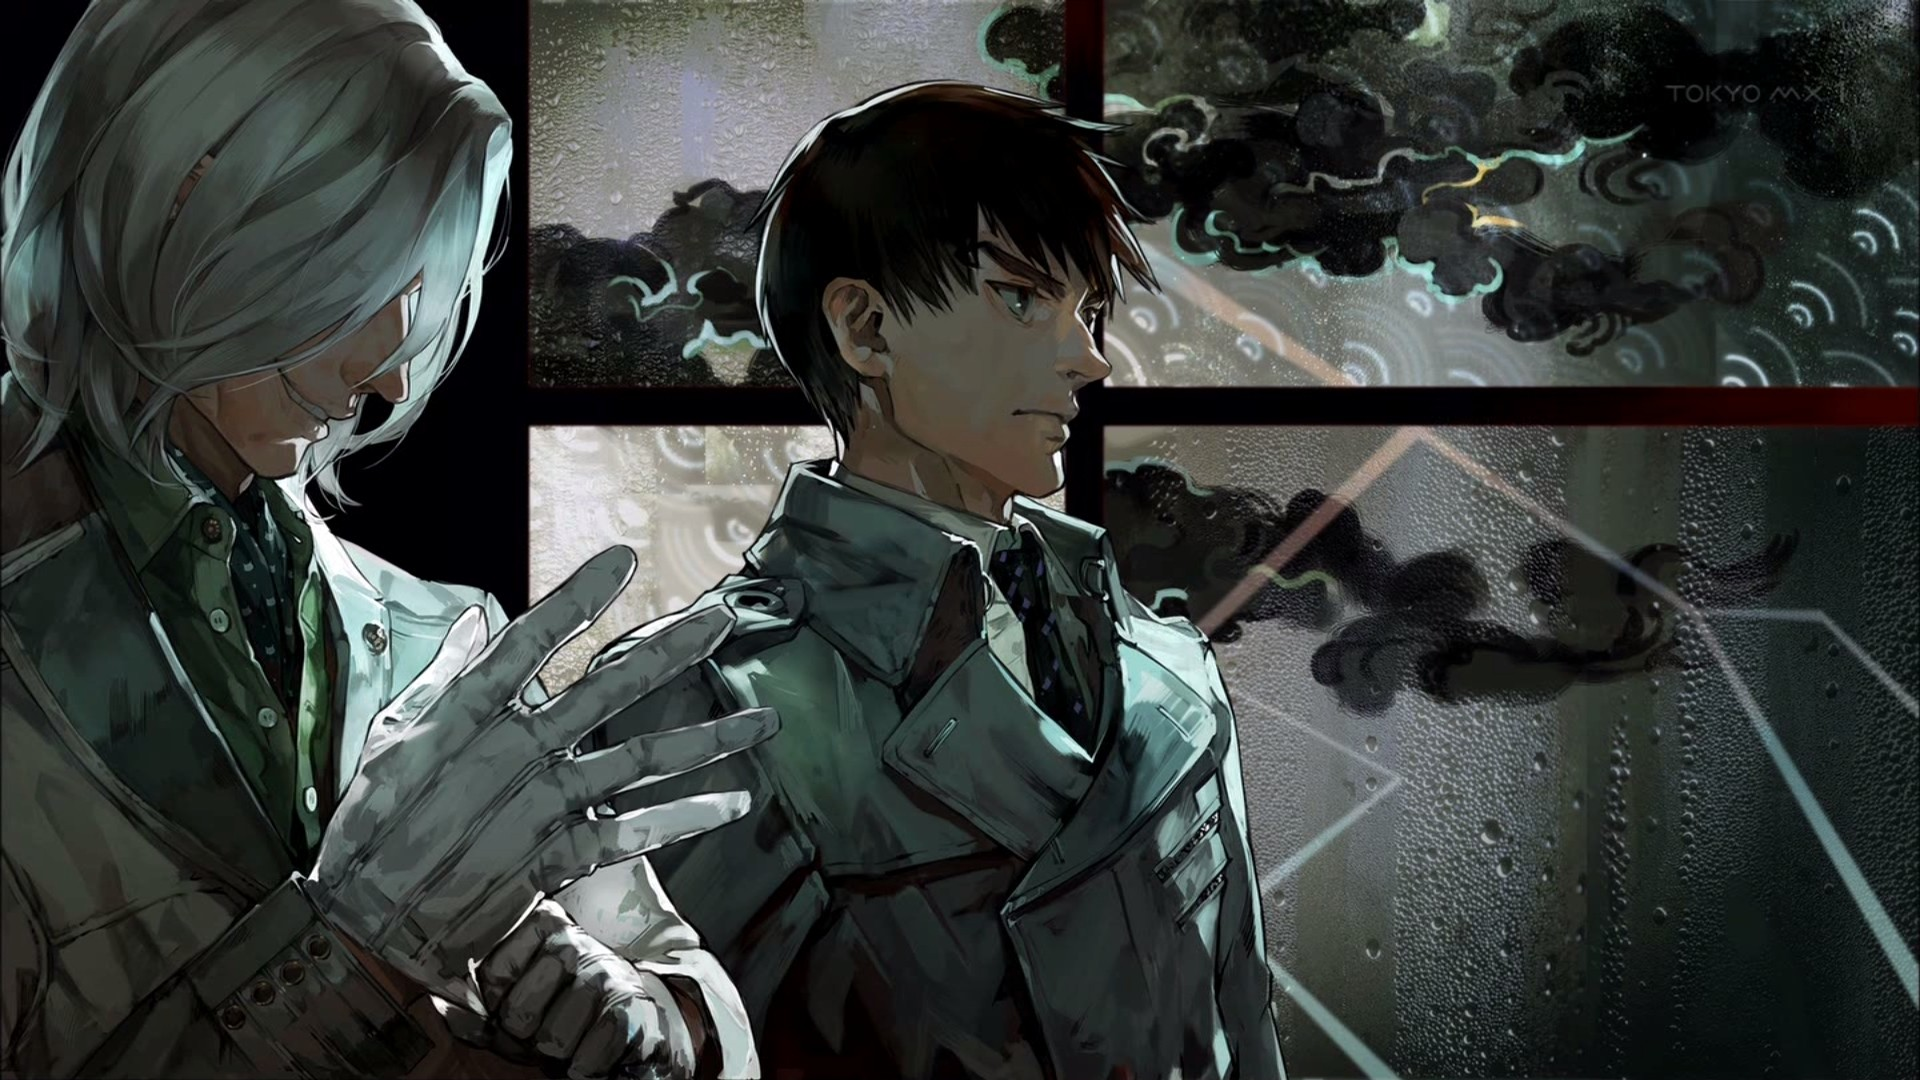 tokyo ghoul clipart 1920x1080 - Clipground